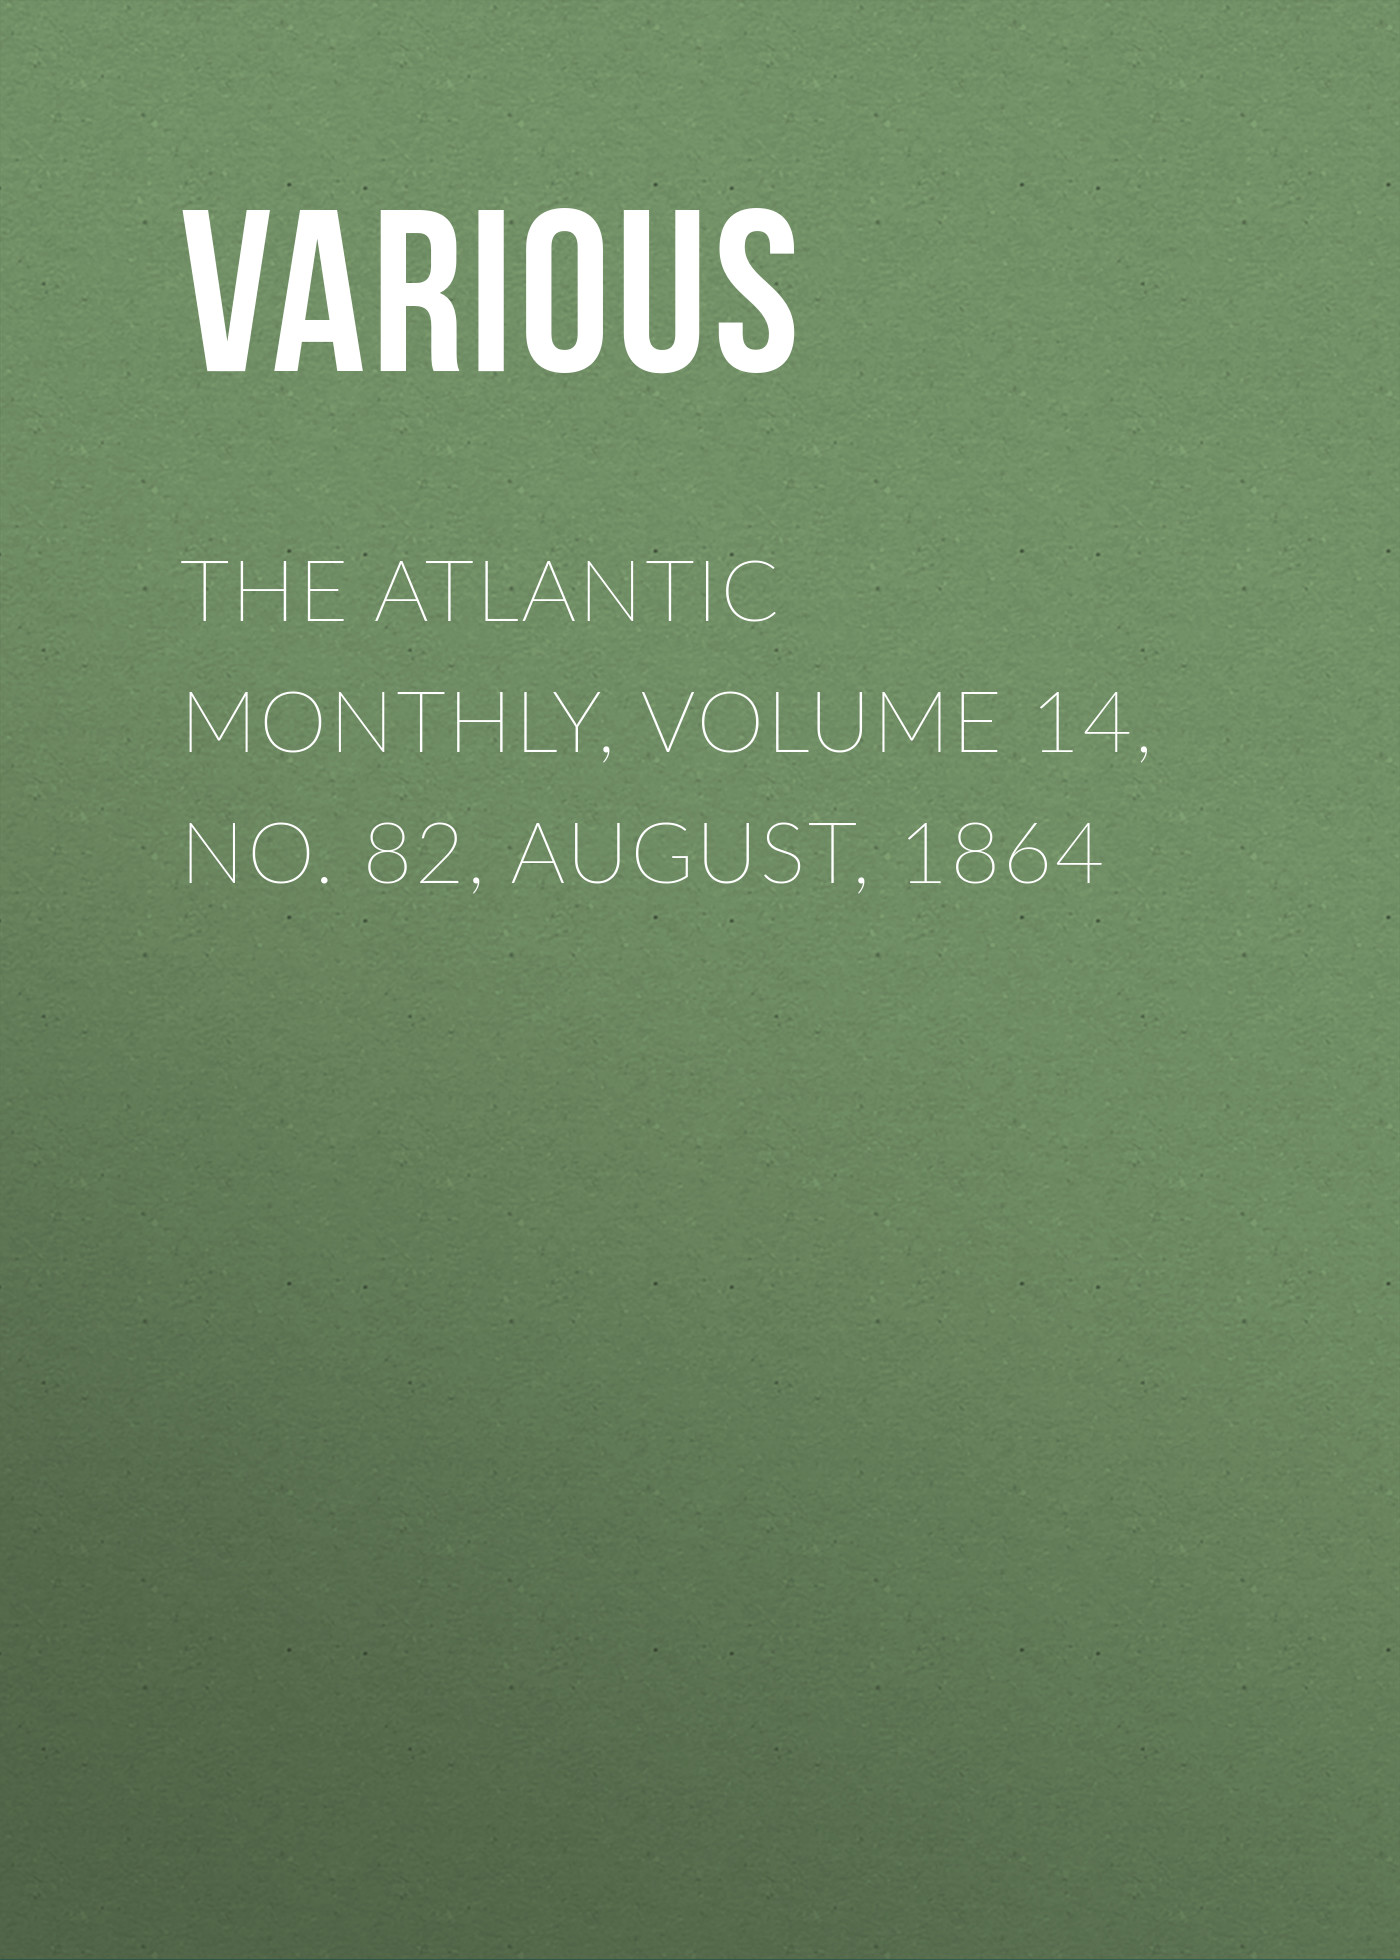 Various The Atlantic Monthly, Volume 14, No. 82, August, 1864 various the atlantic monthly volume 02 no 10 august 1858